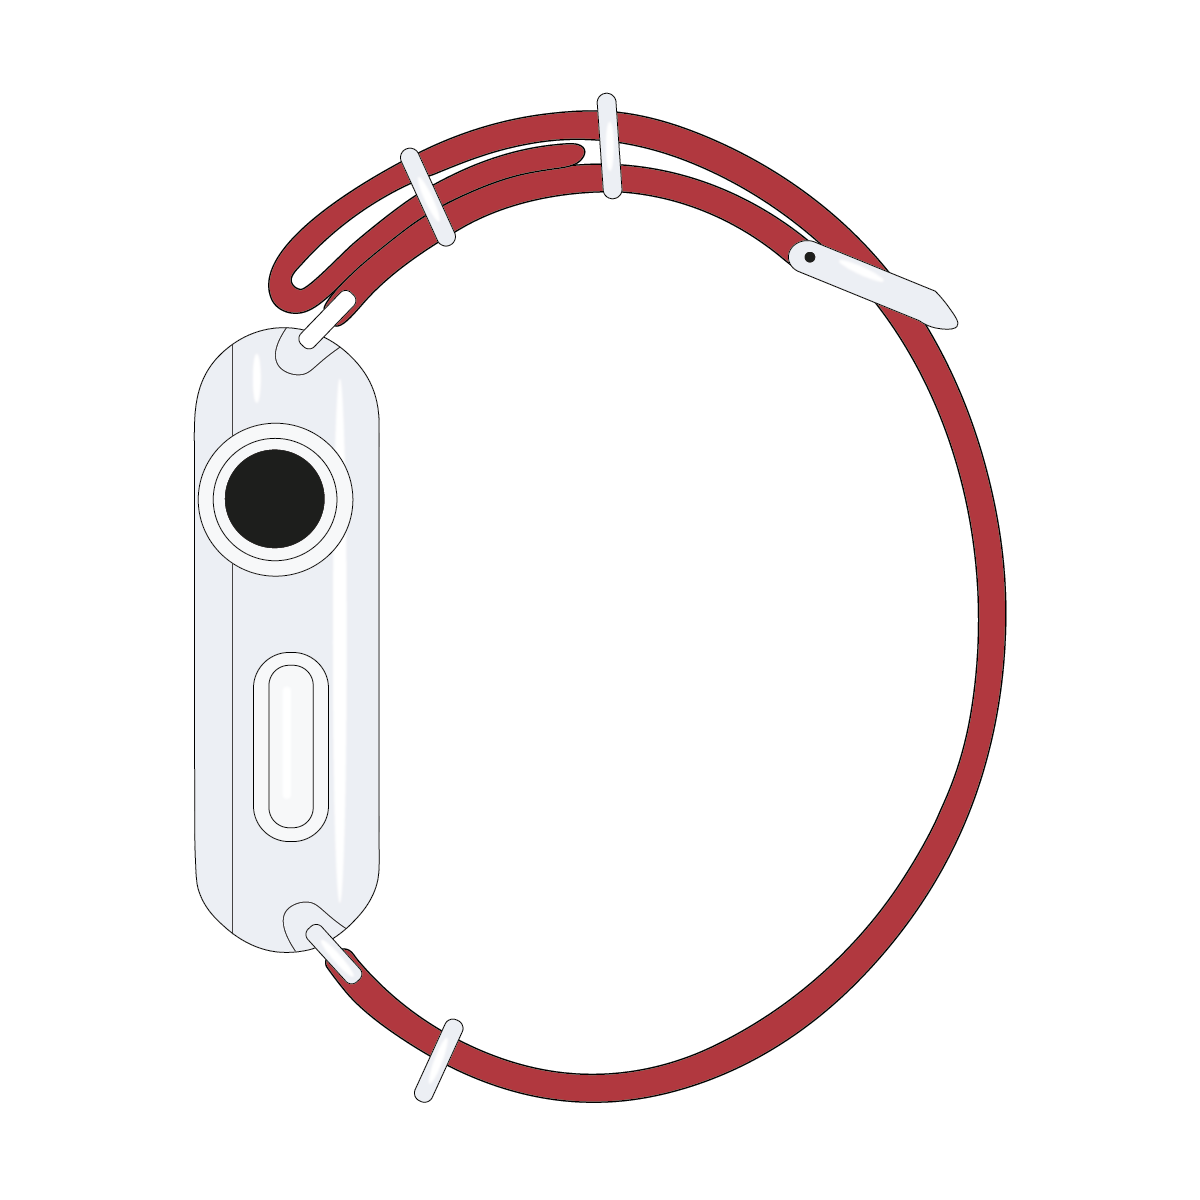 Correa para Apple Watch de nailon NATO en rojo cereza/blanco | Roobaya – Bild 4